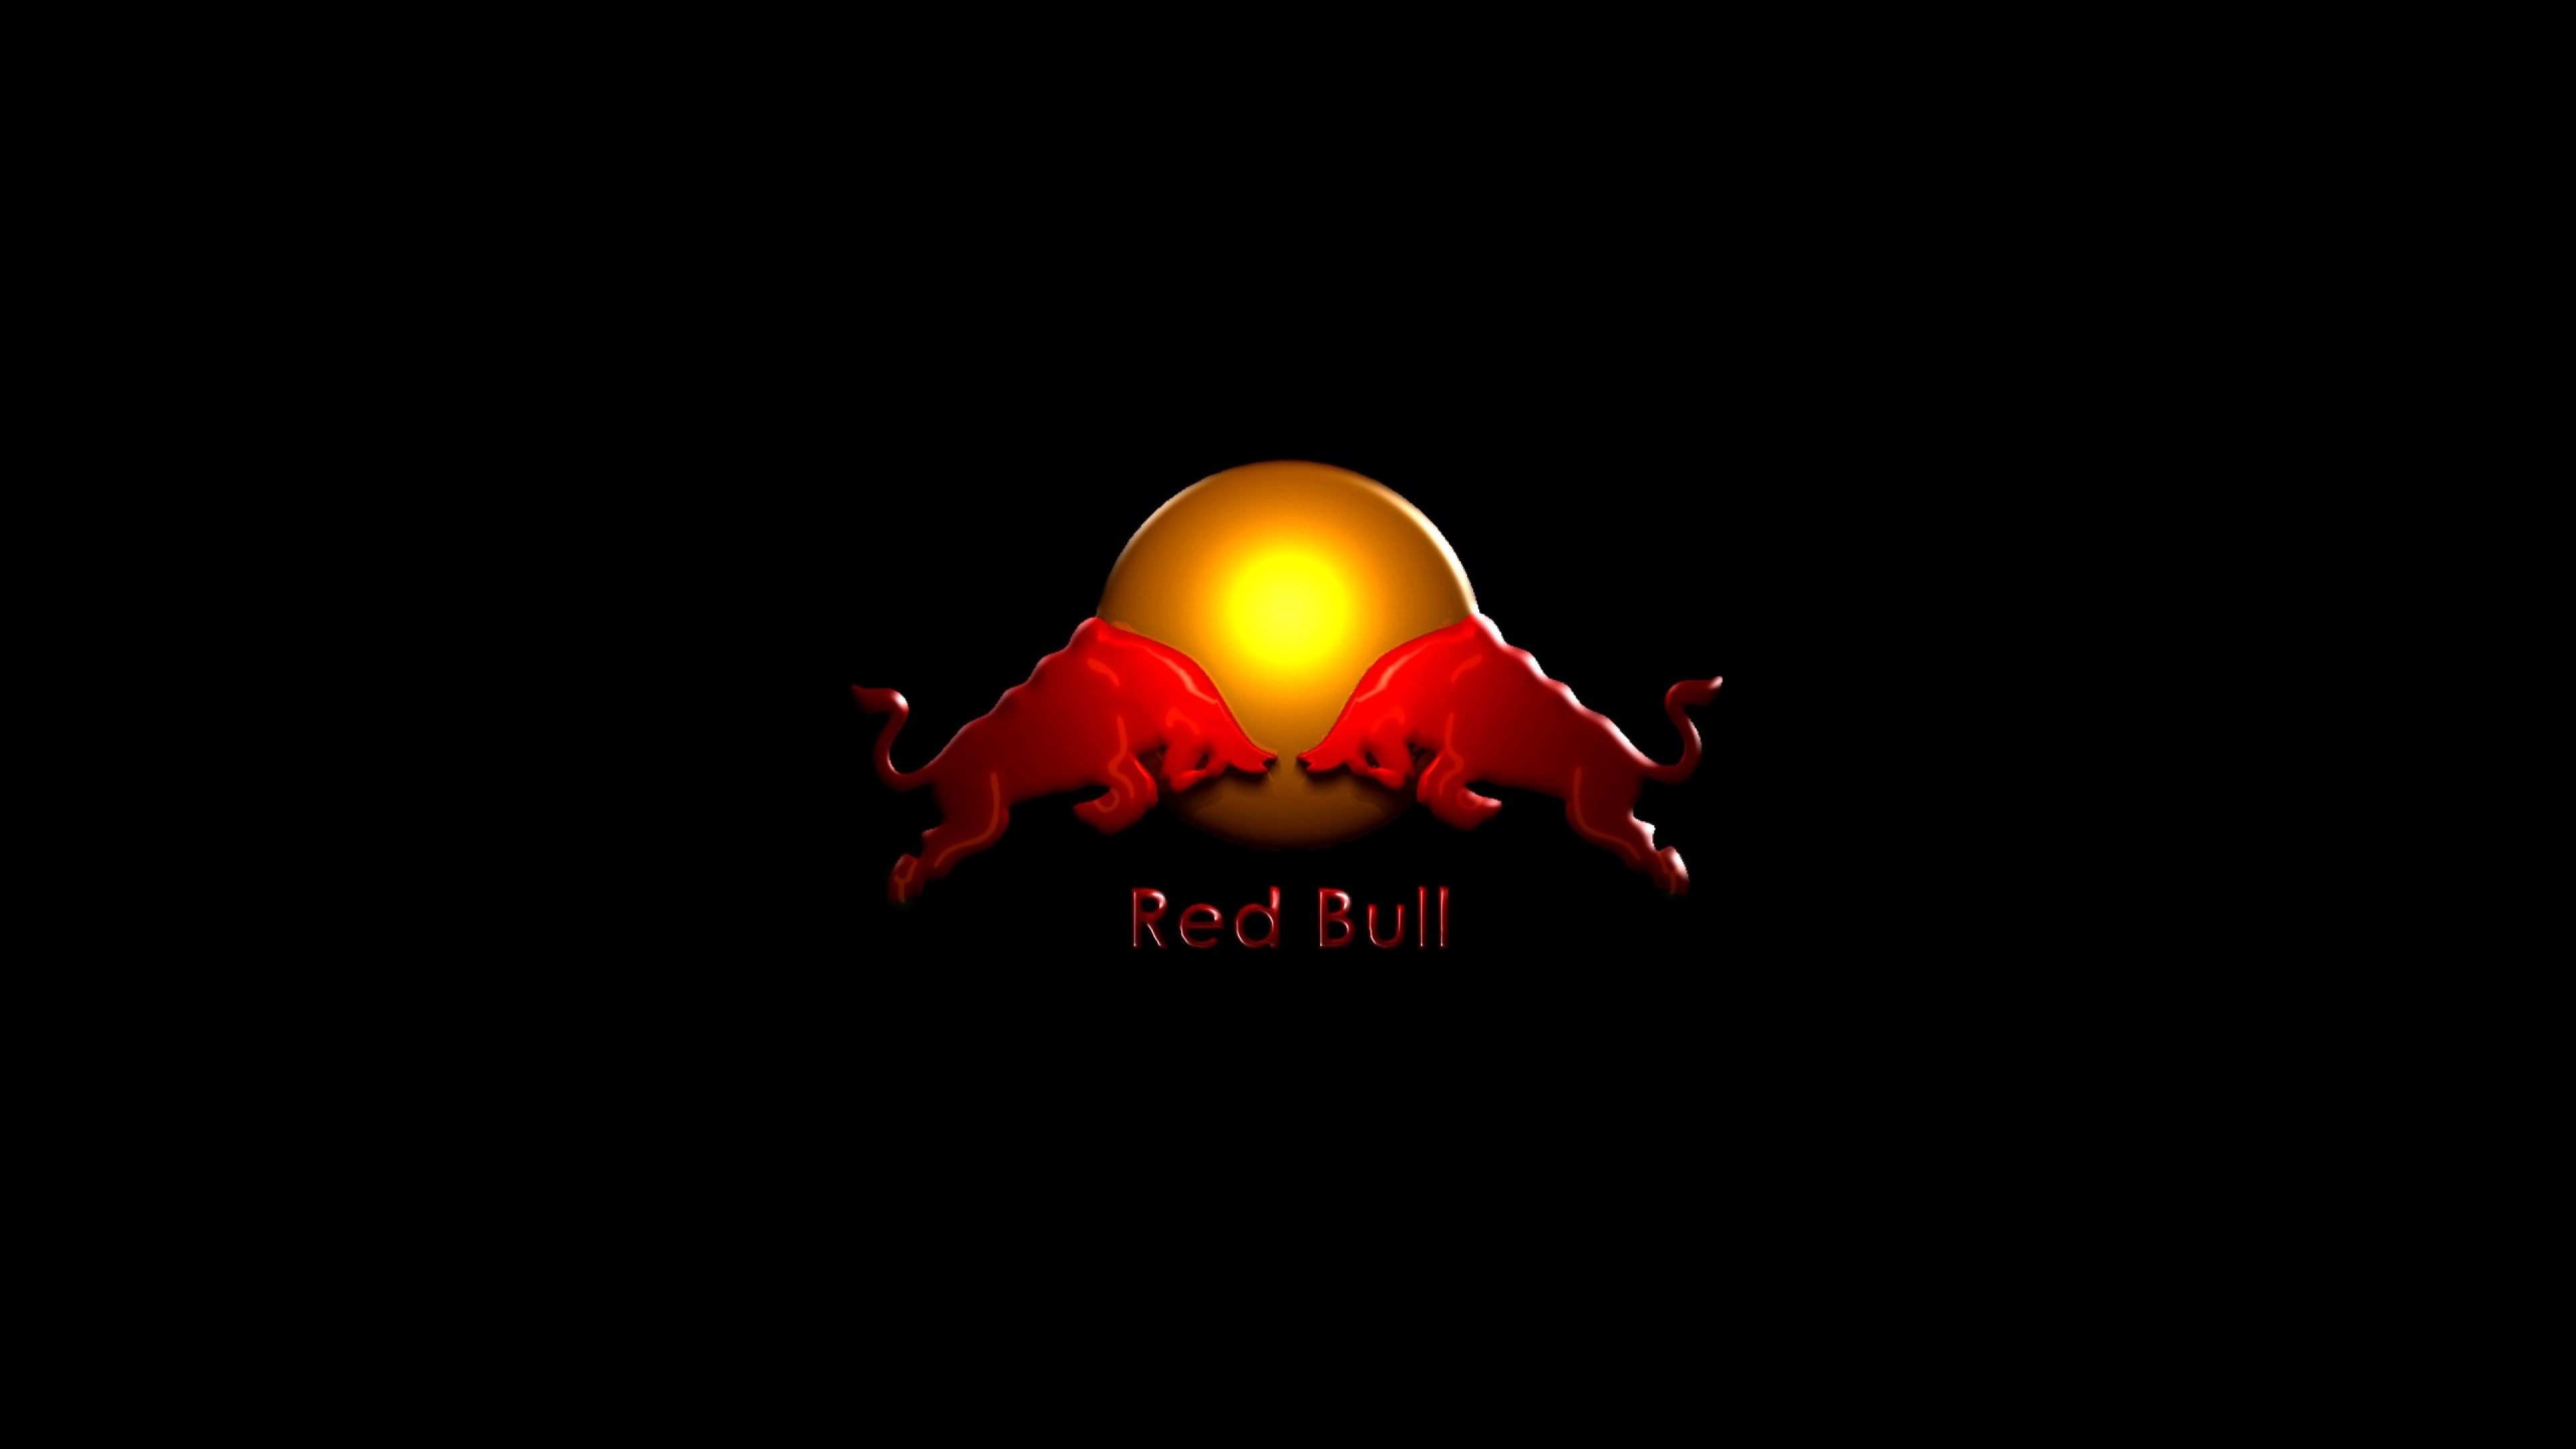 Red Bull Wallpapers